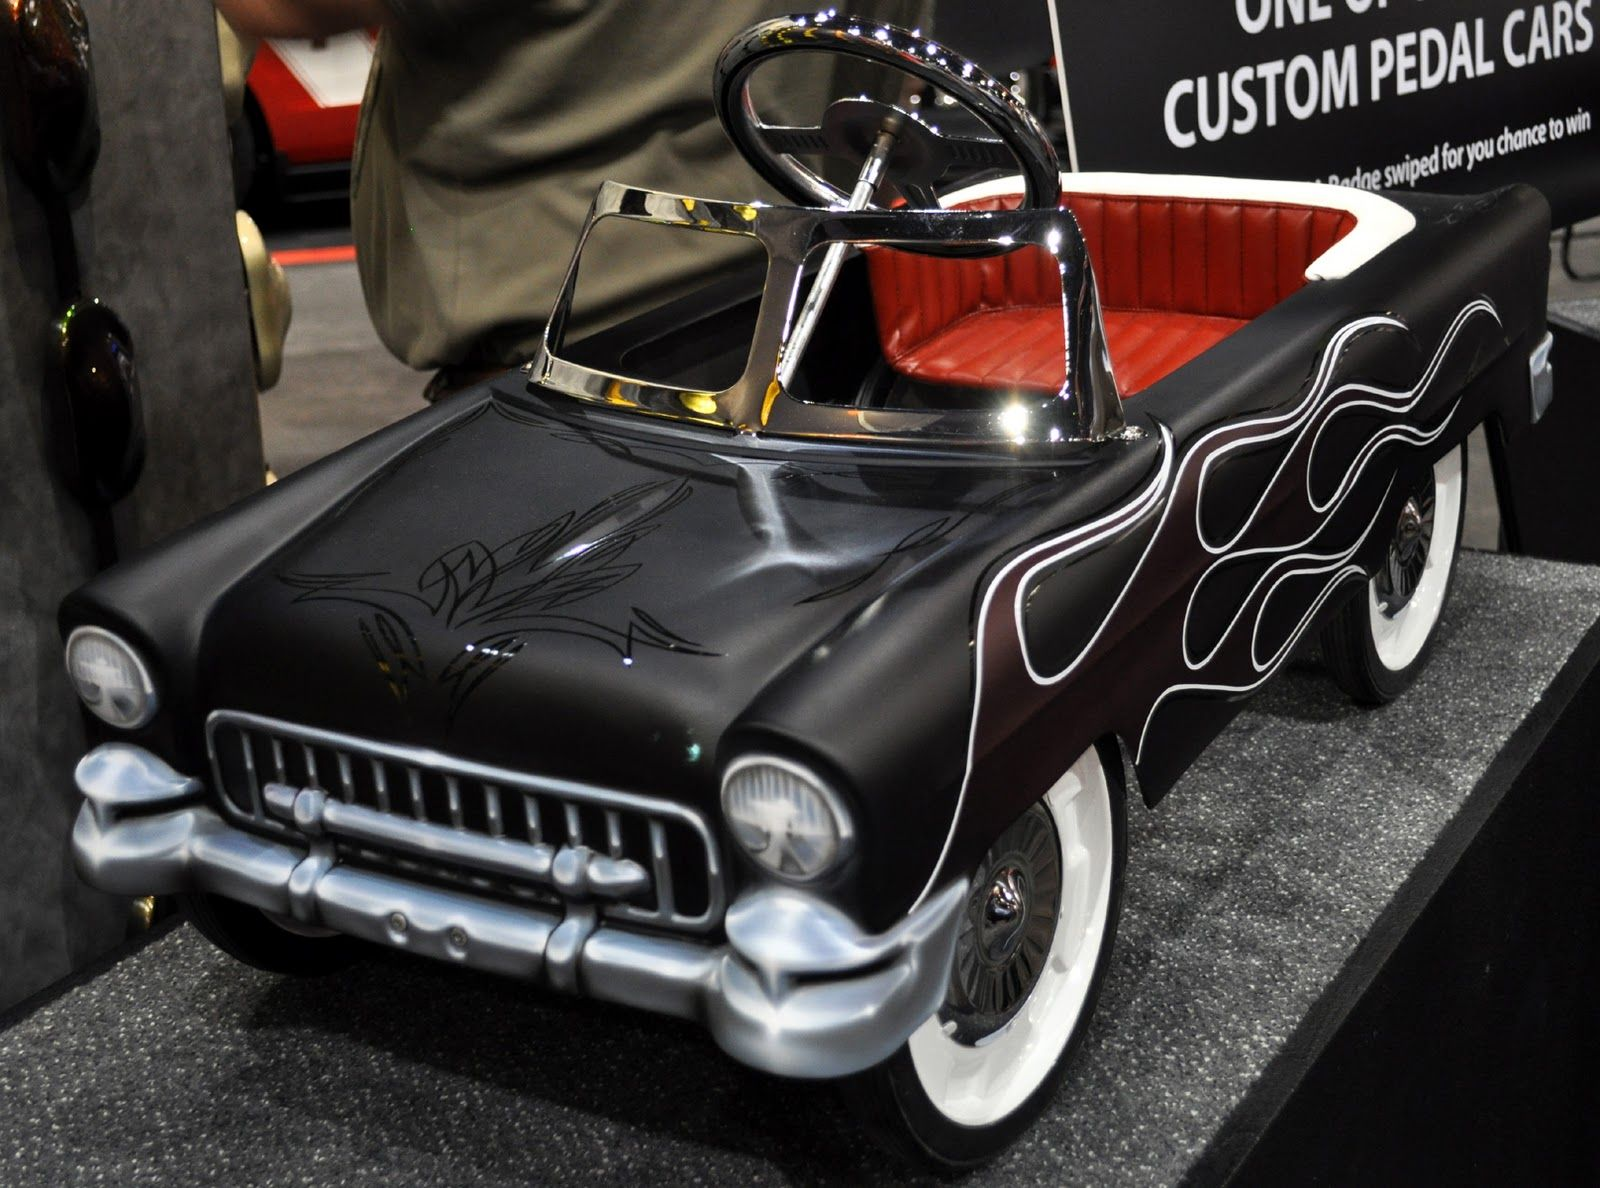 Lowrider car toys  Lowrider Pedal Cars  Just a car guy  a couple pedal cars at SEMA